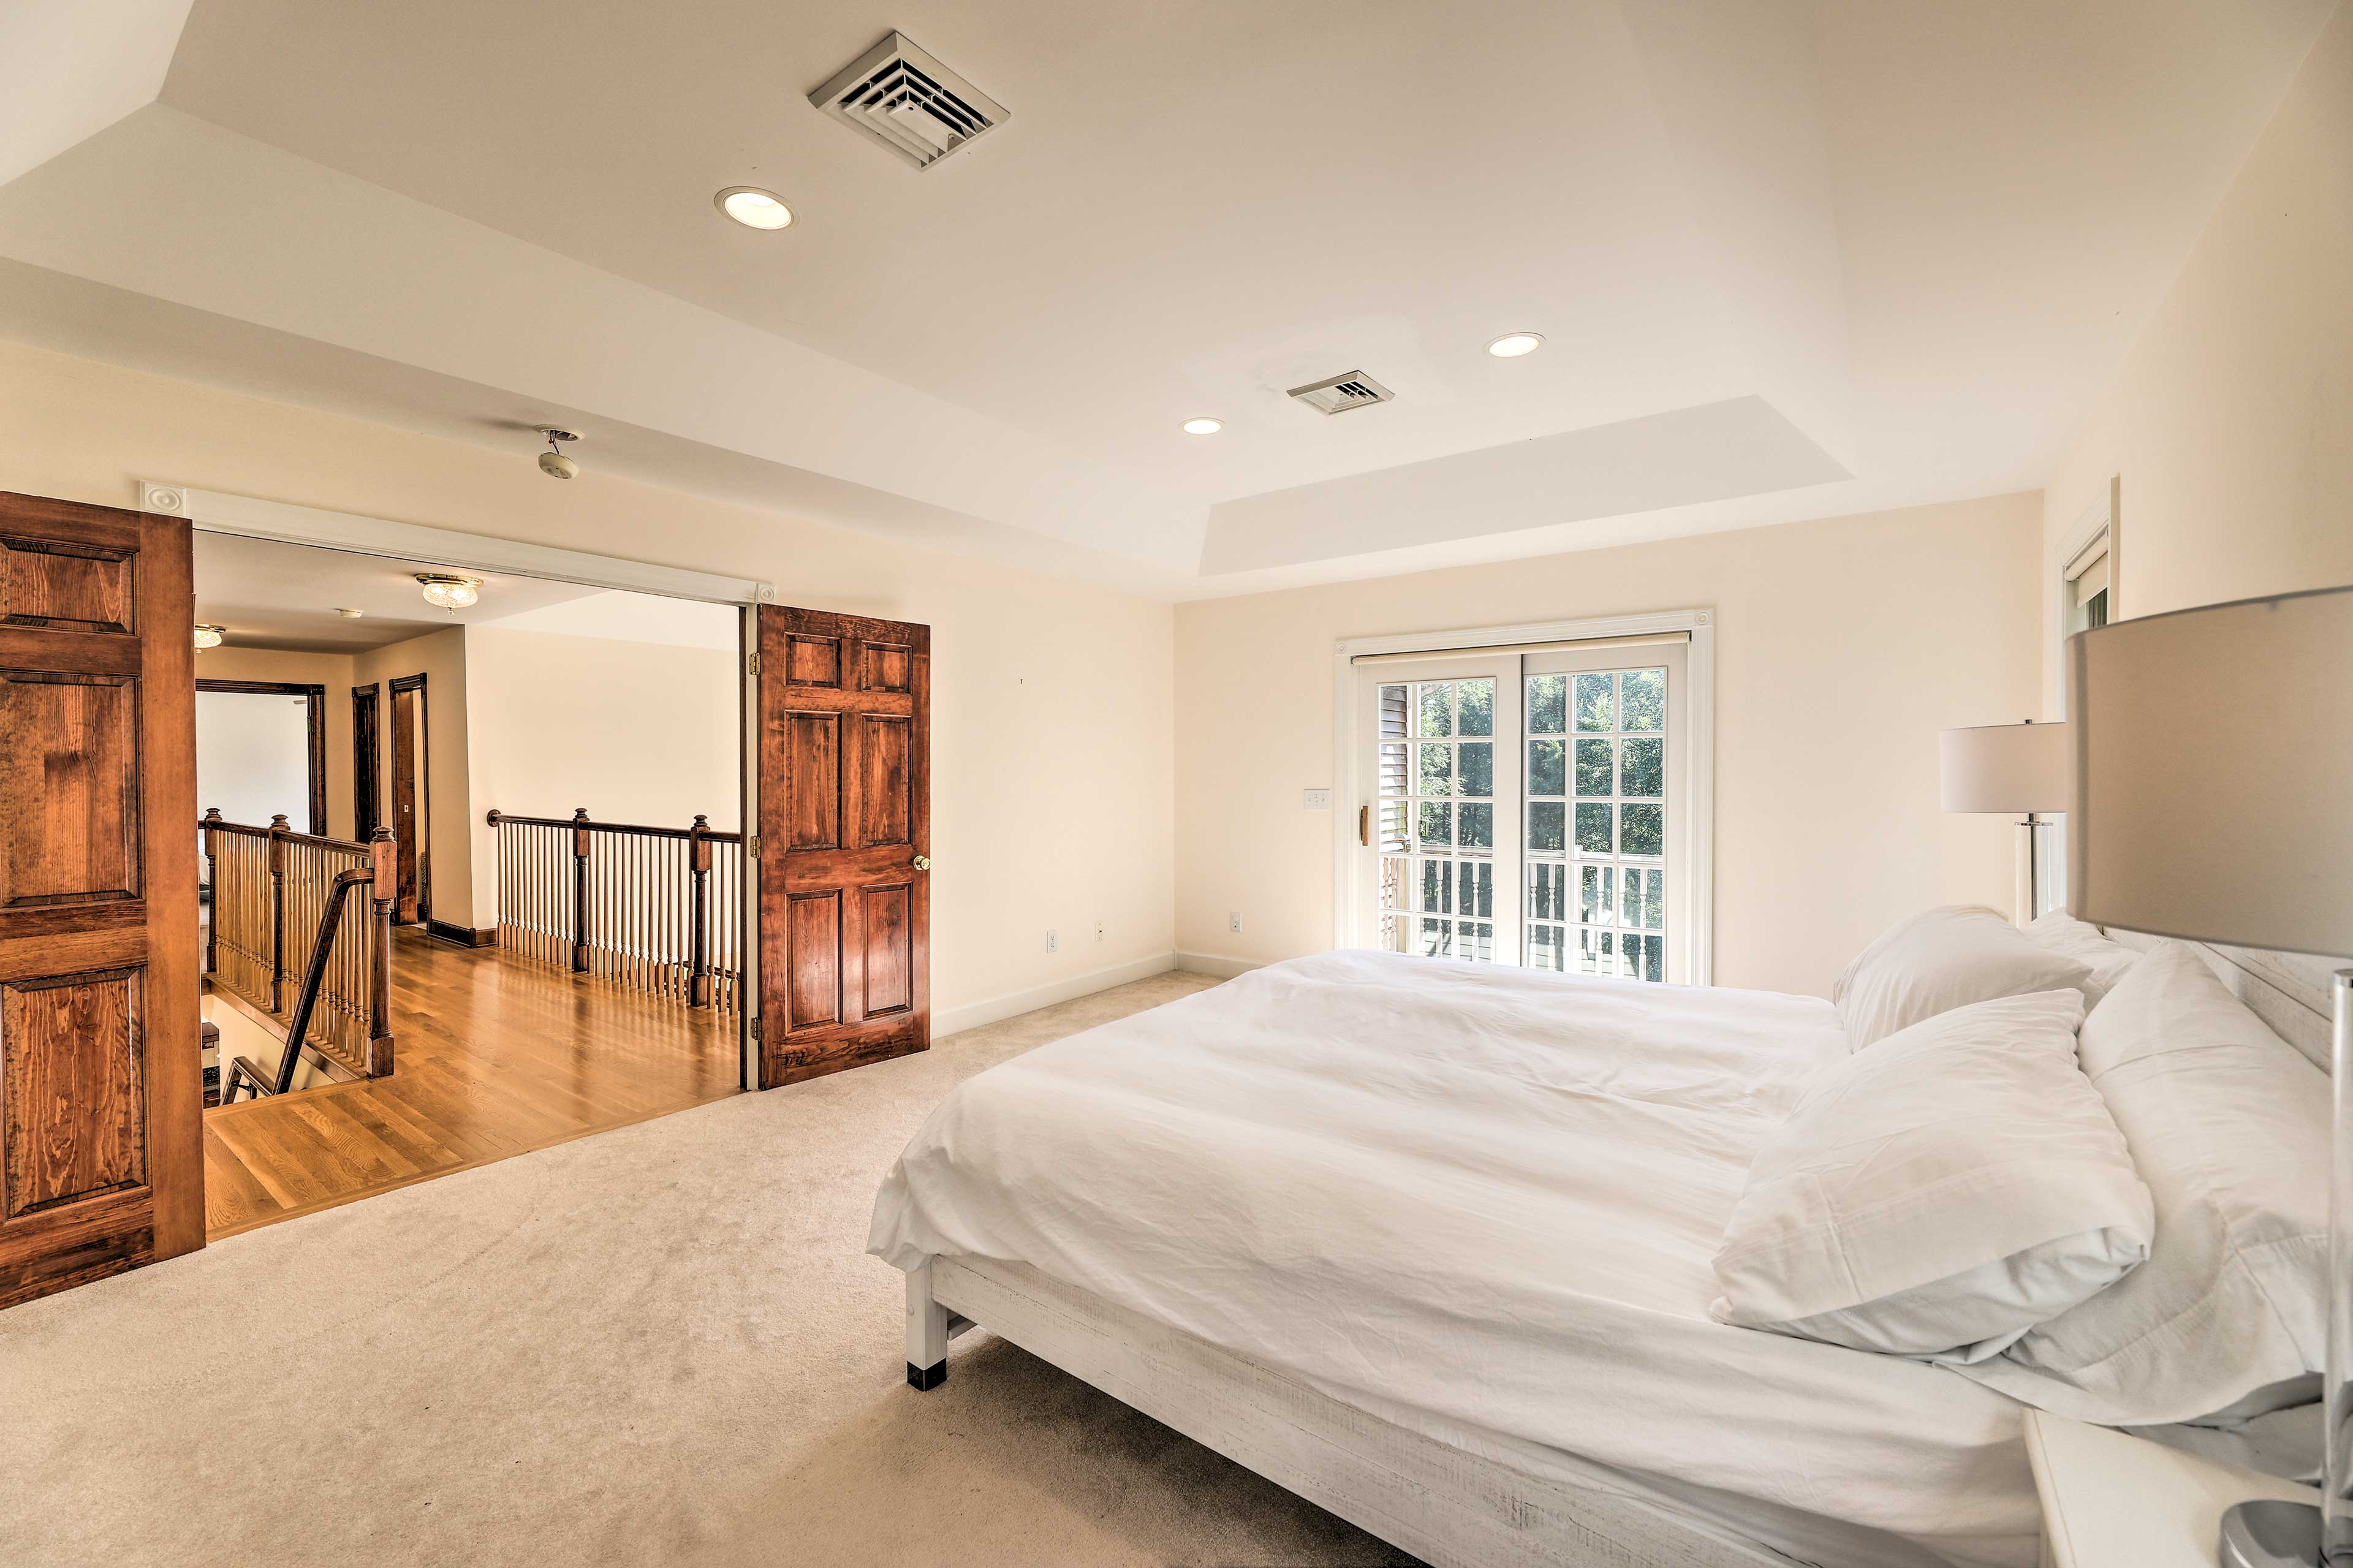 The master bedroom boasts dual doors & a king bed.